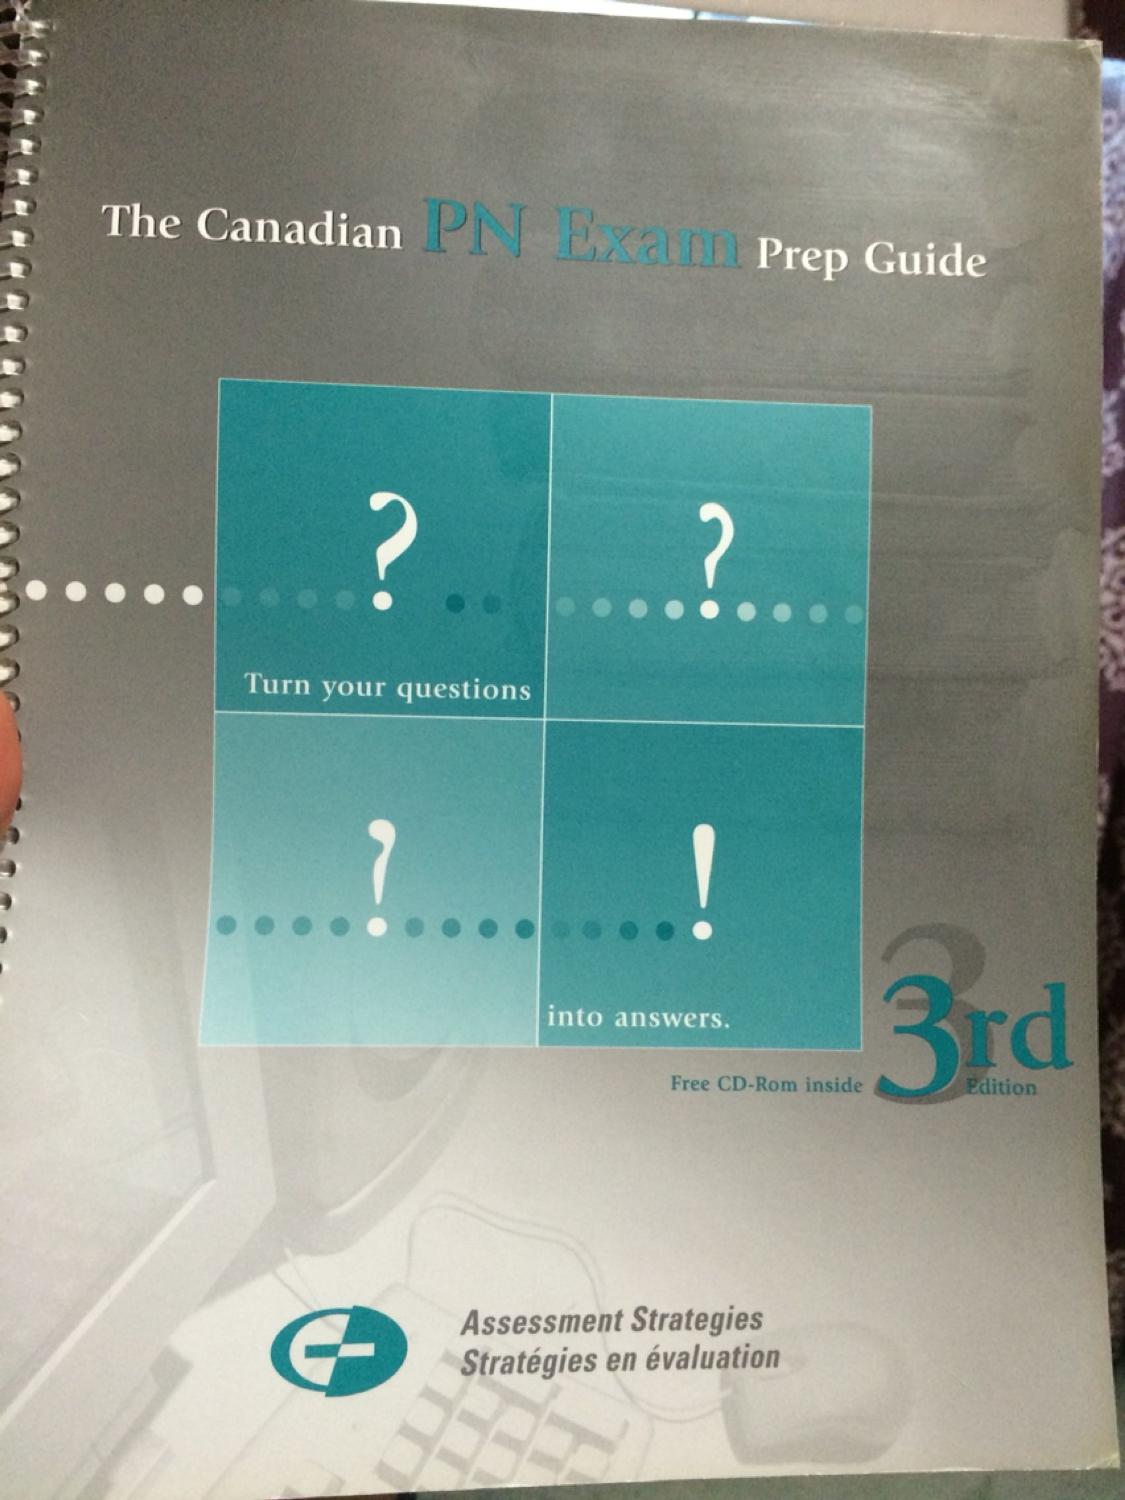 Pn Exam Prep Guide for sale at up to 90% off